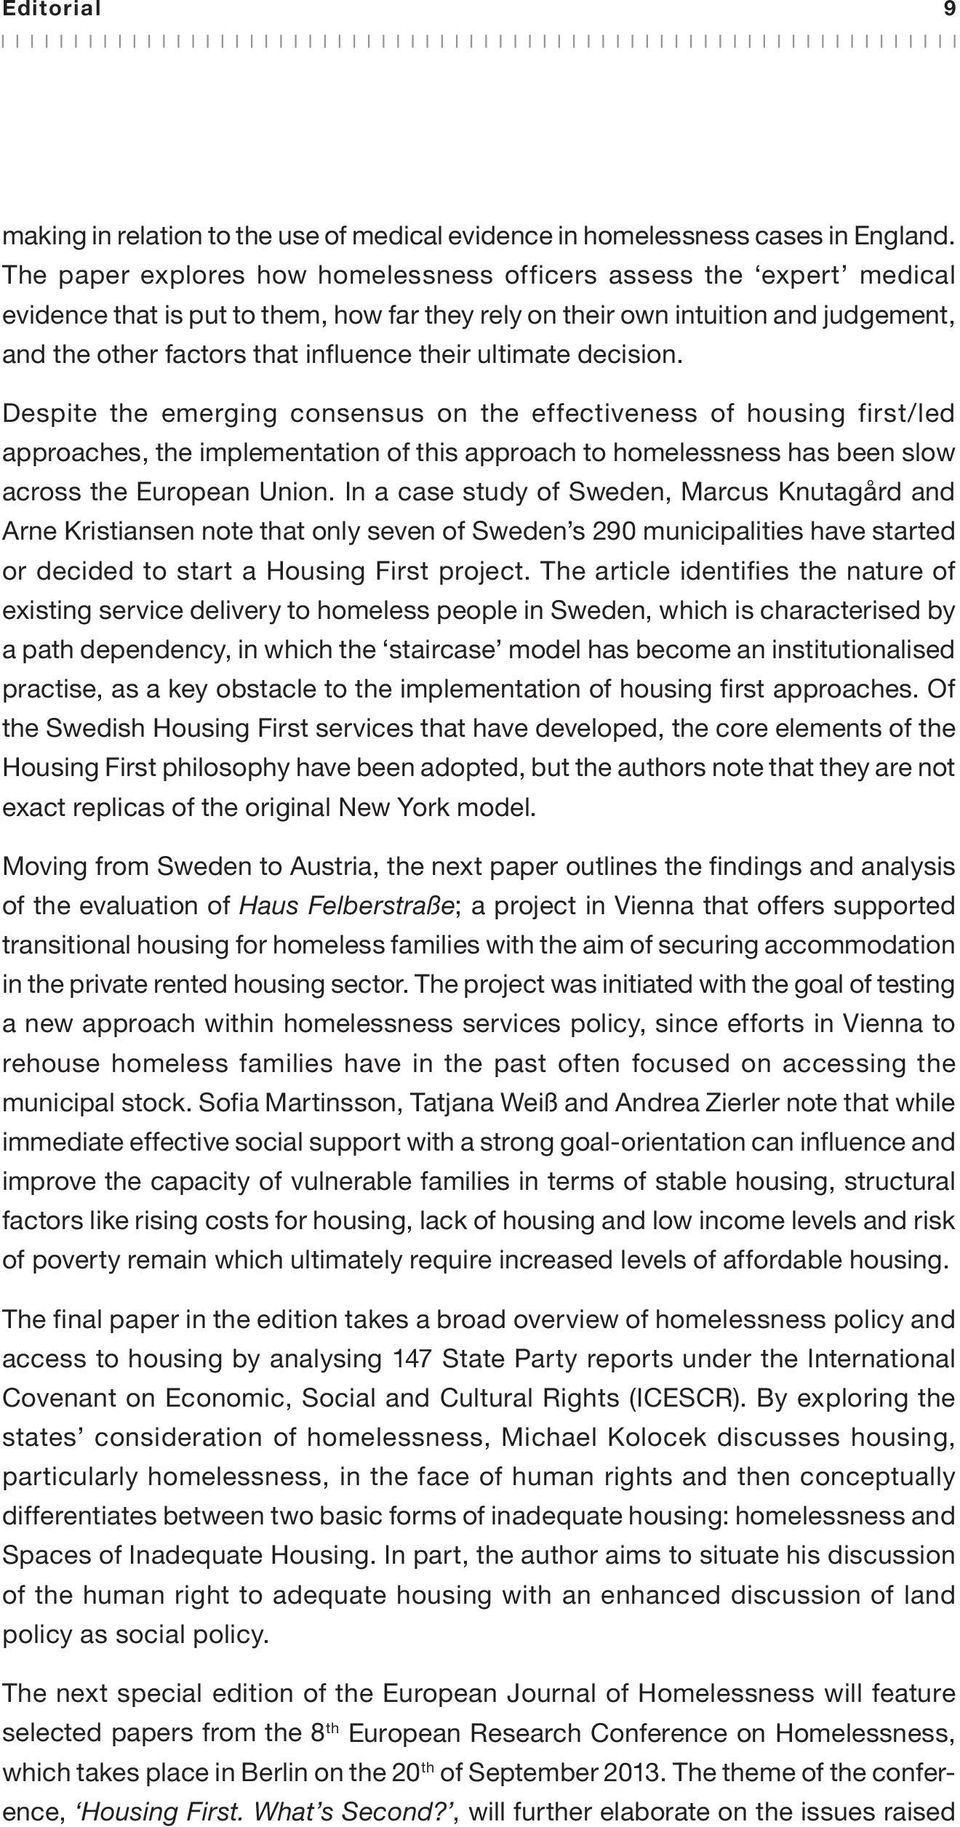 ultimate decision. Despite the emerging consensus on the effectiveness of housing first/led approaches, the implementation of this approach to homelessness has been slow across the European Union.